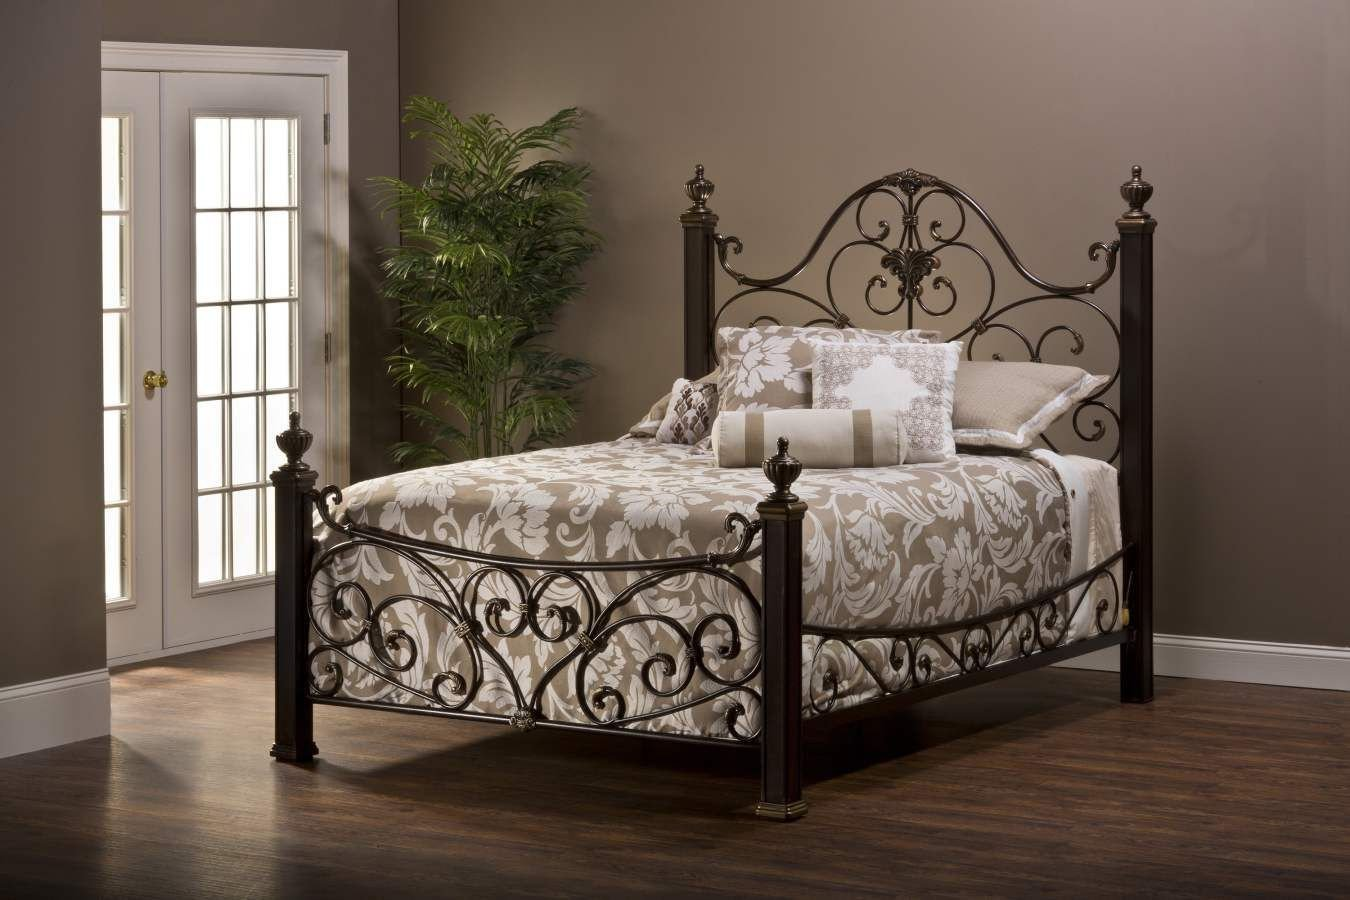 Wrought Iron Bedroom Set New Mikelson King Bed Set W Rails 1648bqr I Love Antique Iron